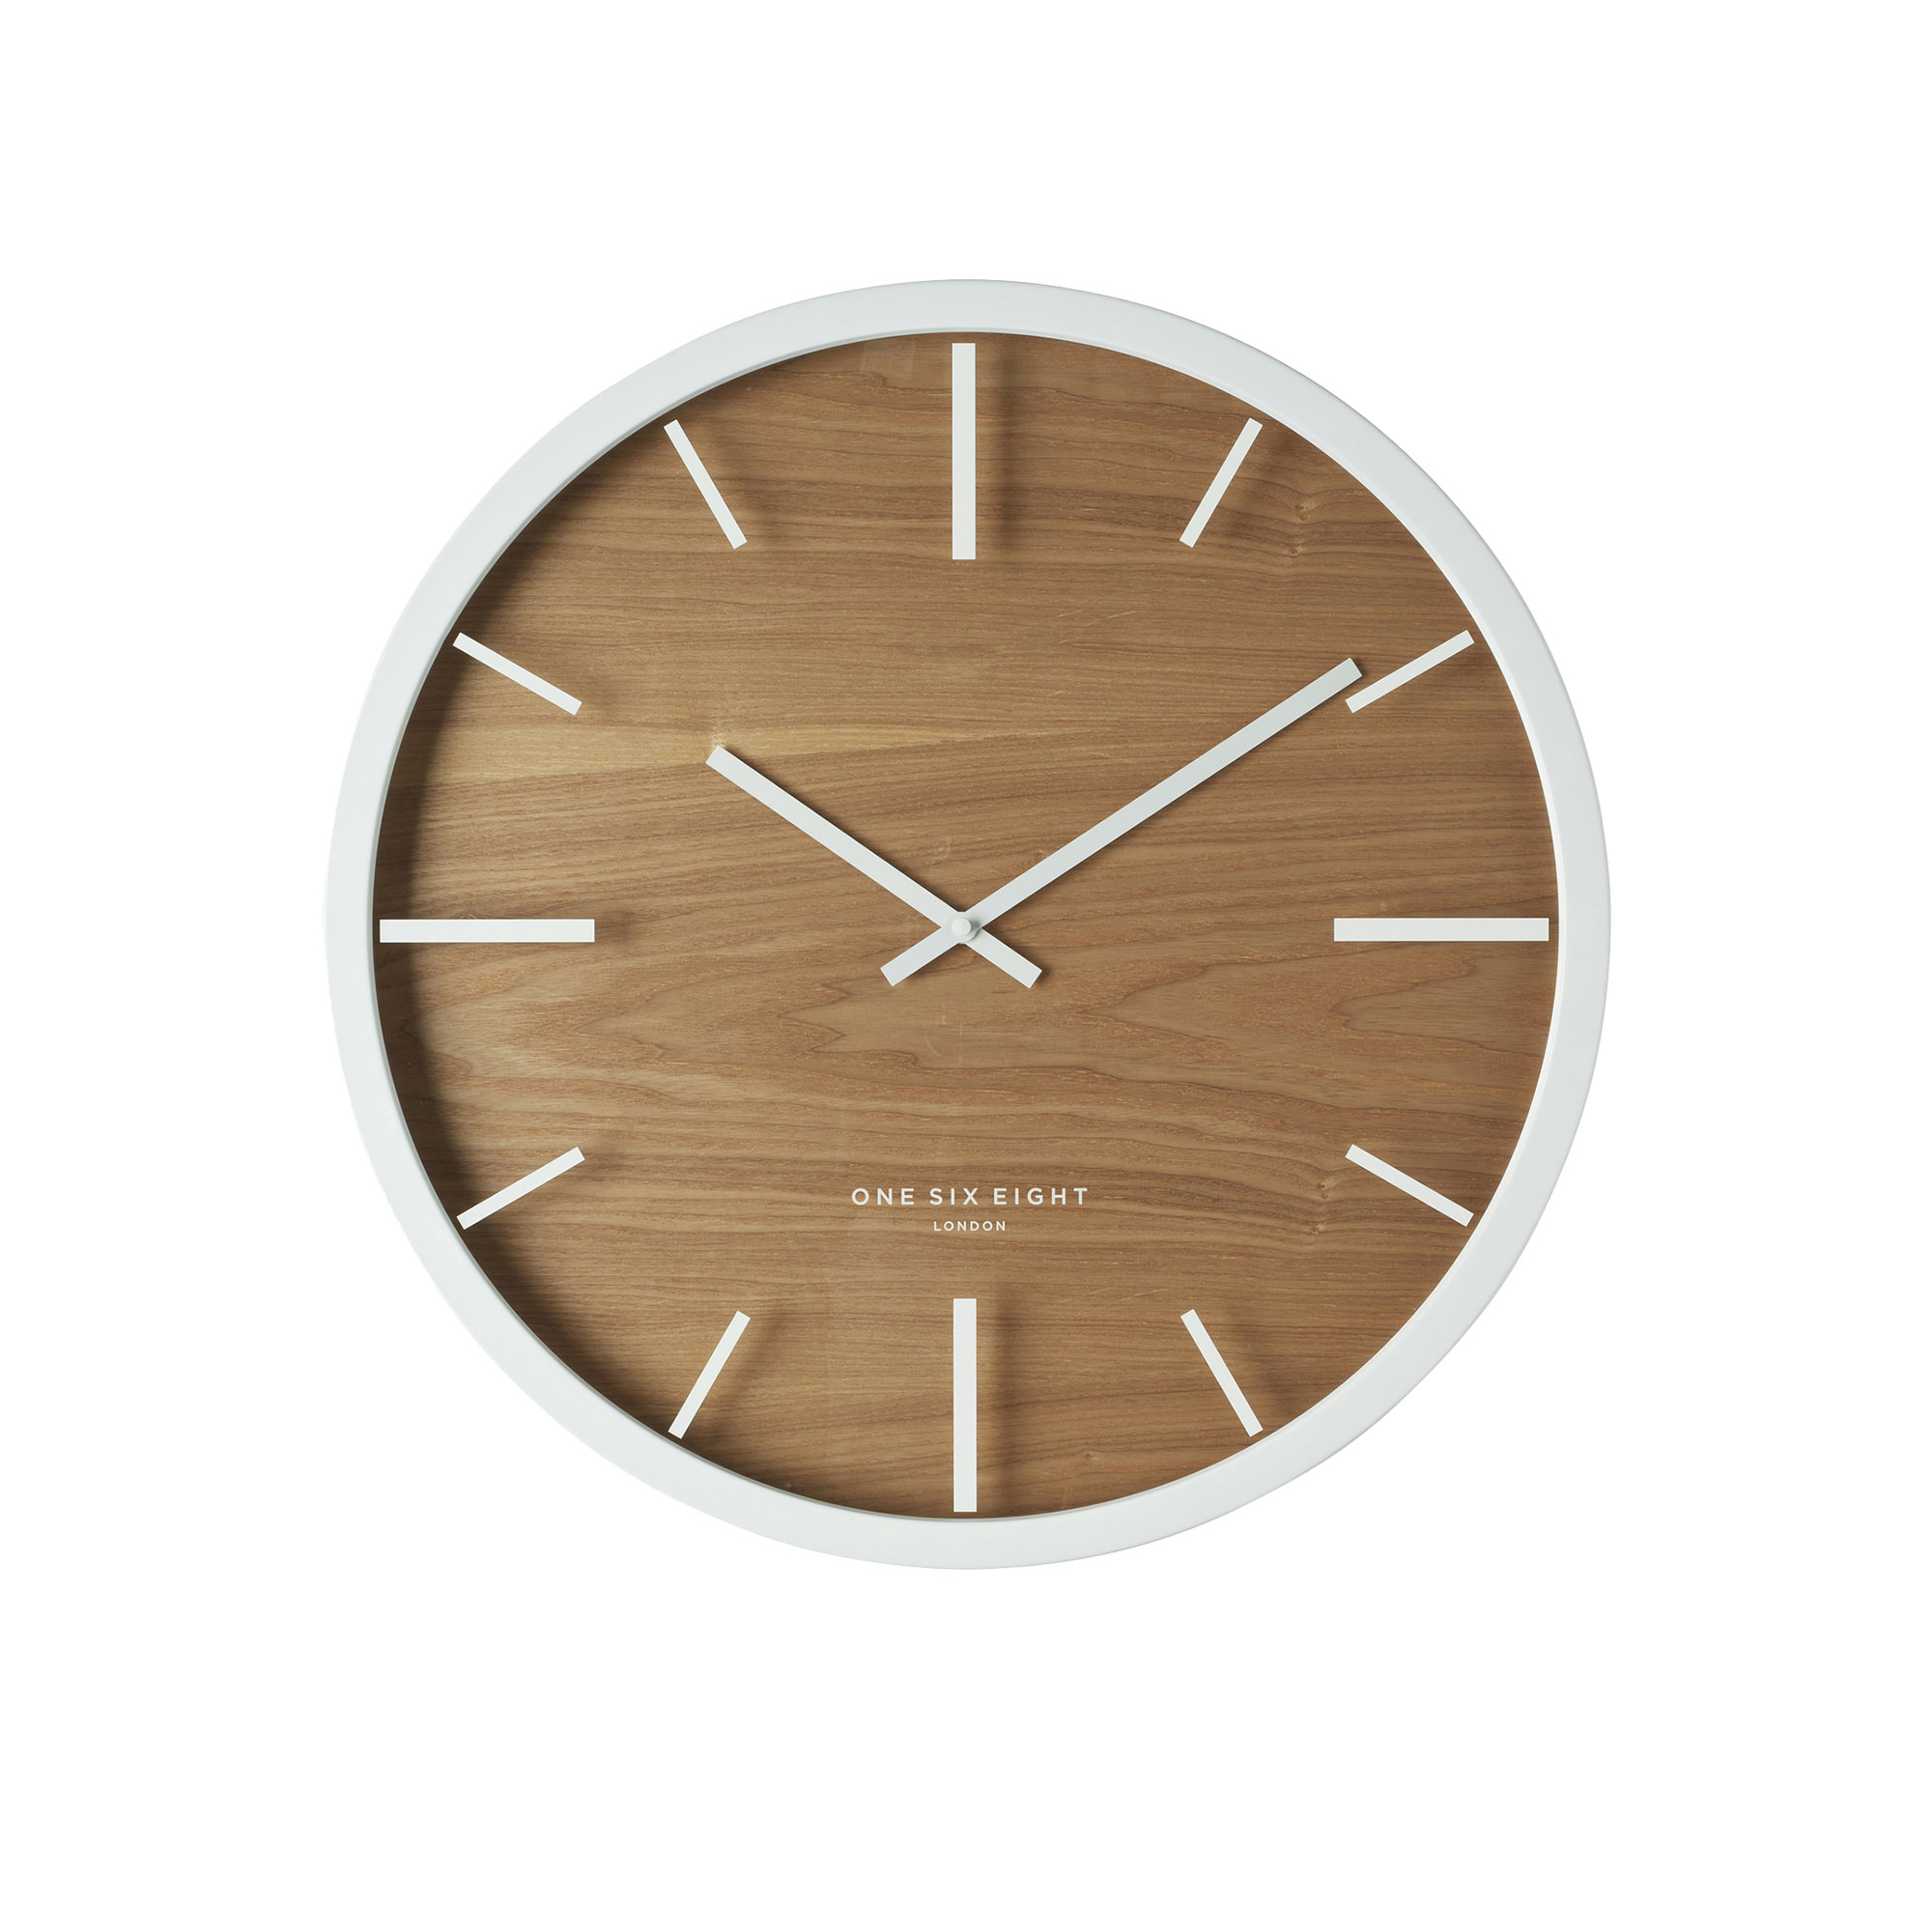 One Six Eight London Willow Silent Wall Clock 30cm White